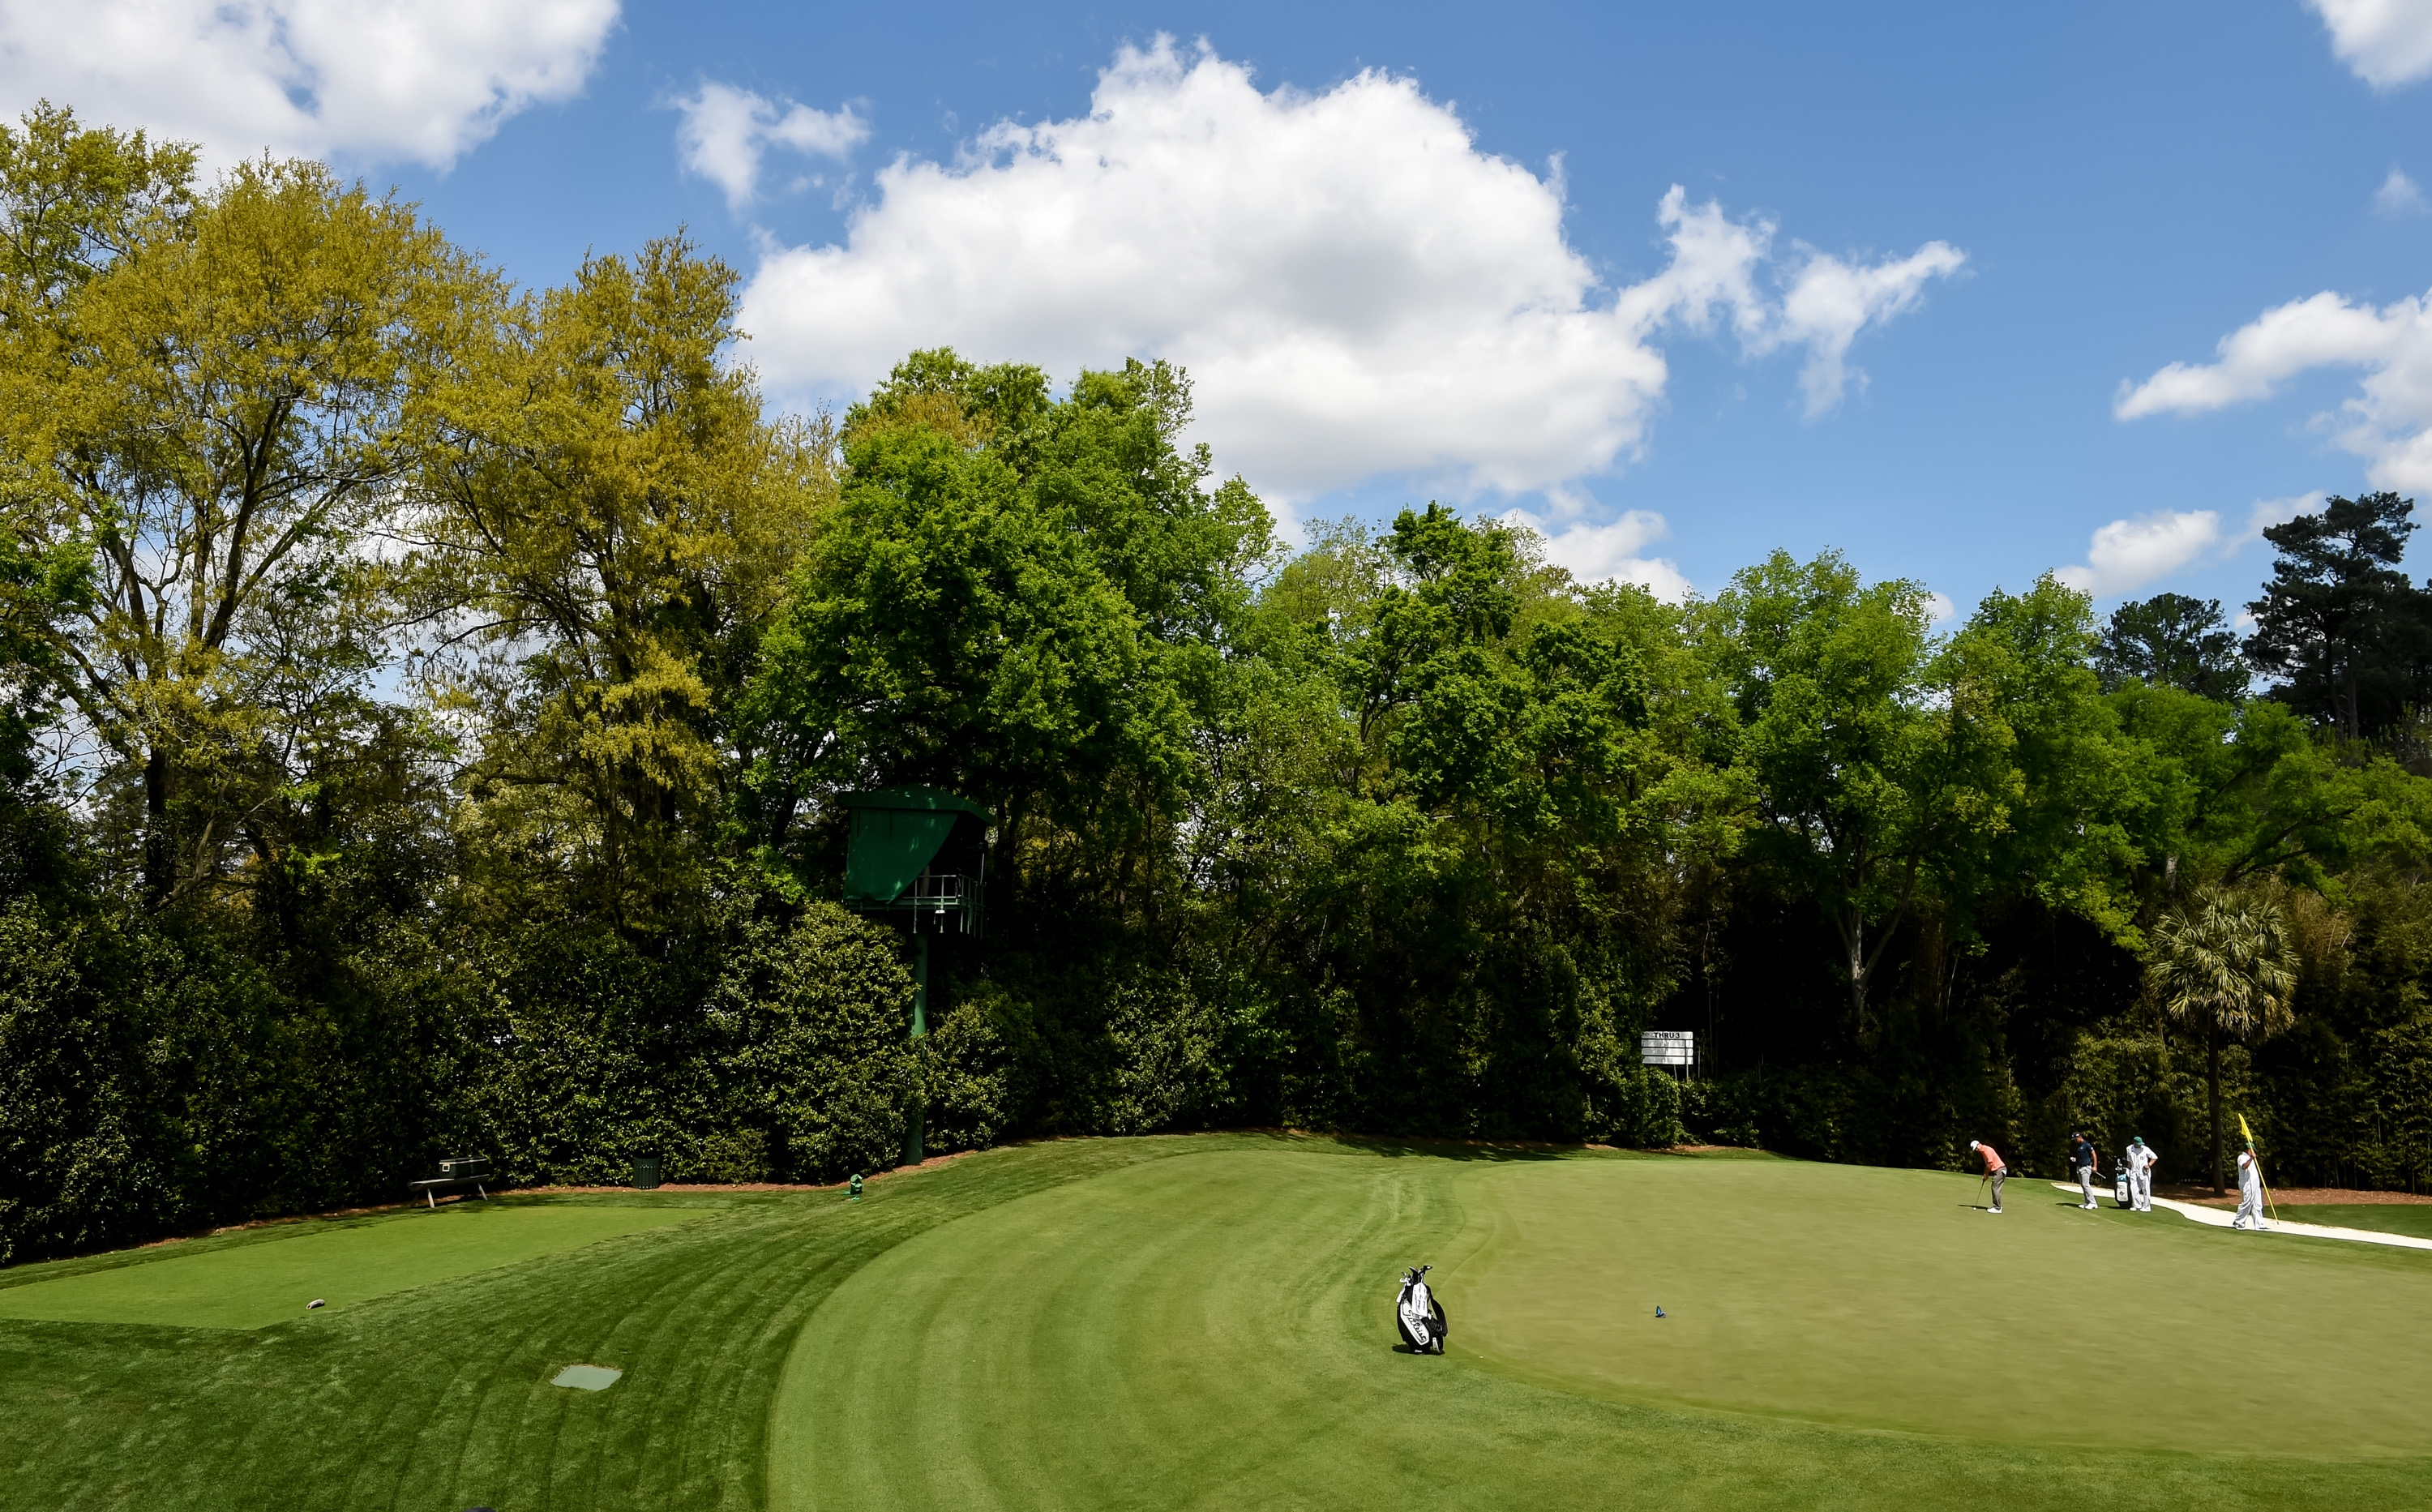 Changes could make fifth hole at the Masters more challenging